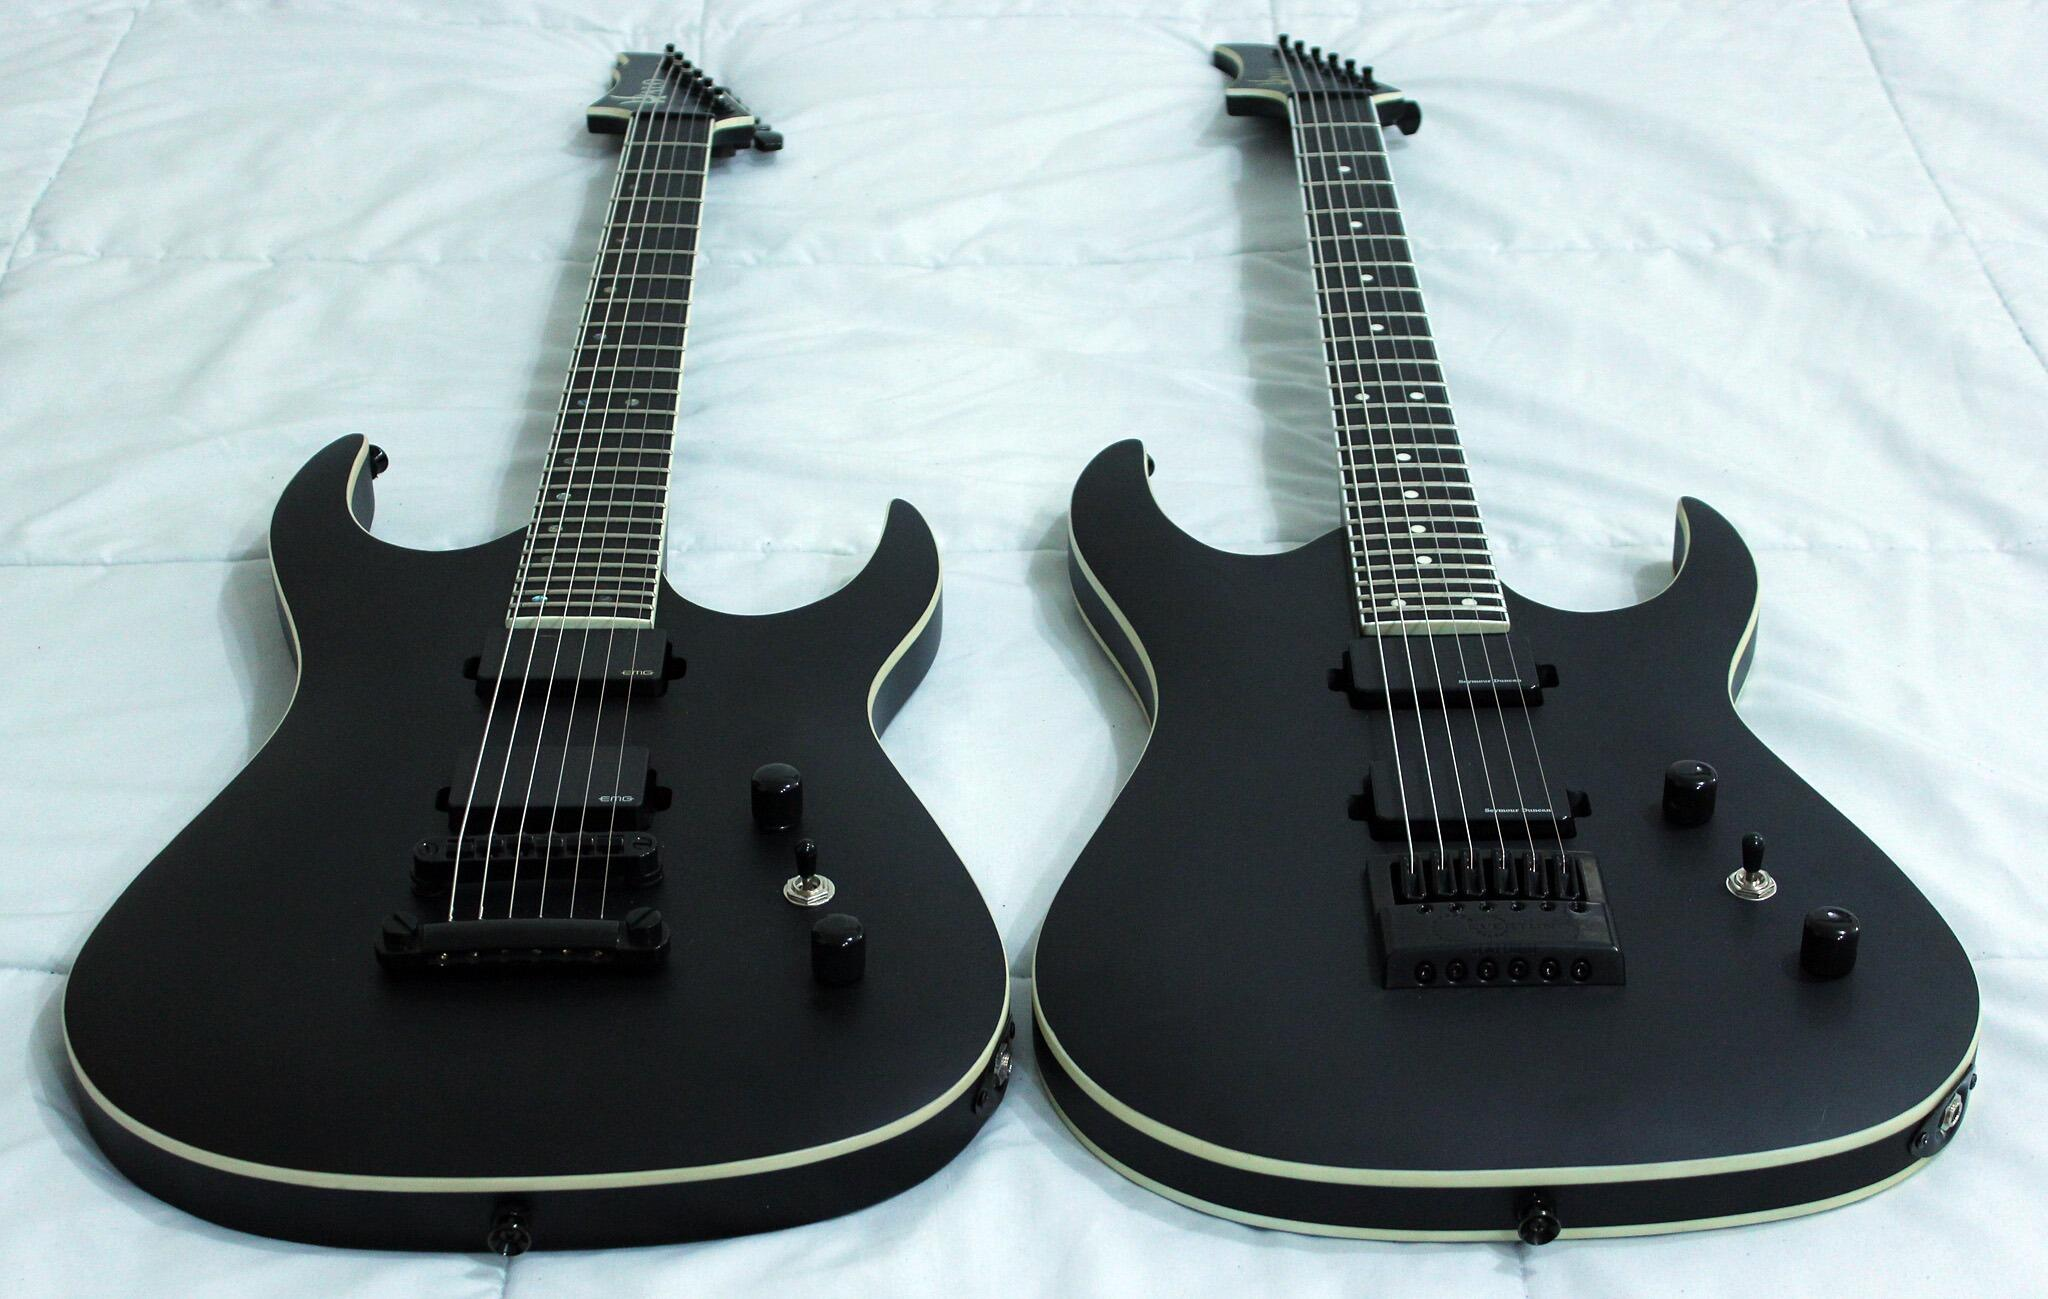 halo custom guitars on twitter merus 6 with emg pickups and tom bridge vs merus 6 with. Black Bedroom Furniture Sets. Home Design Ideas